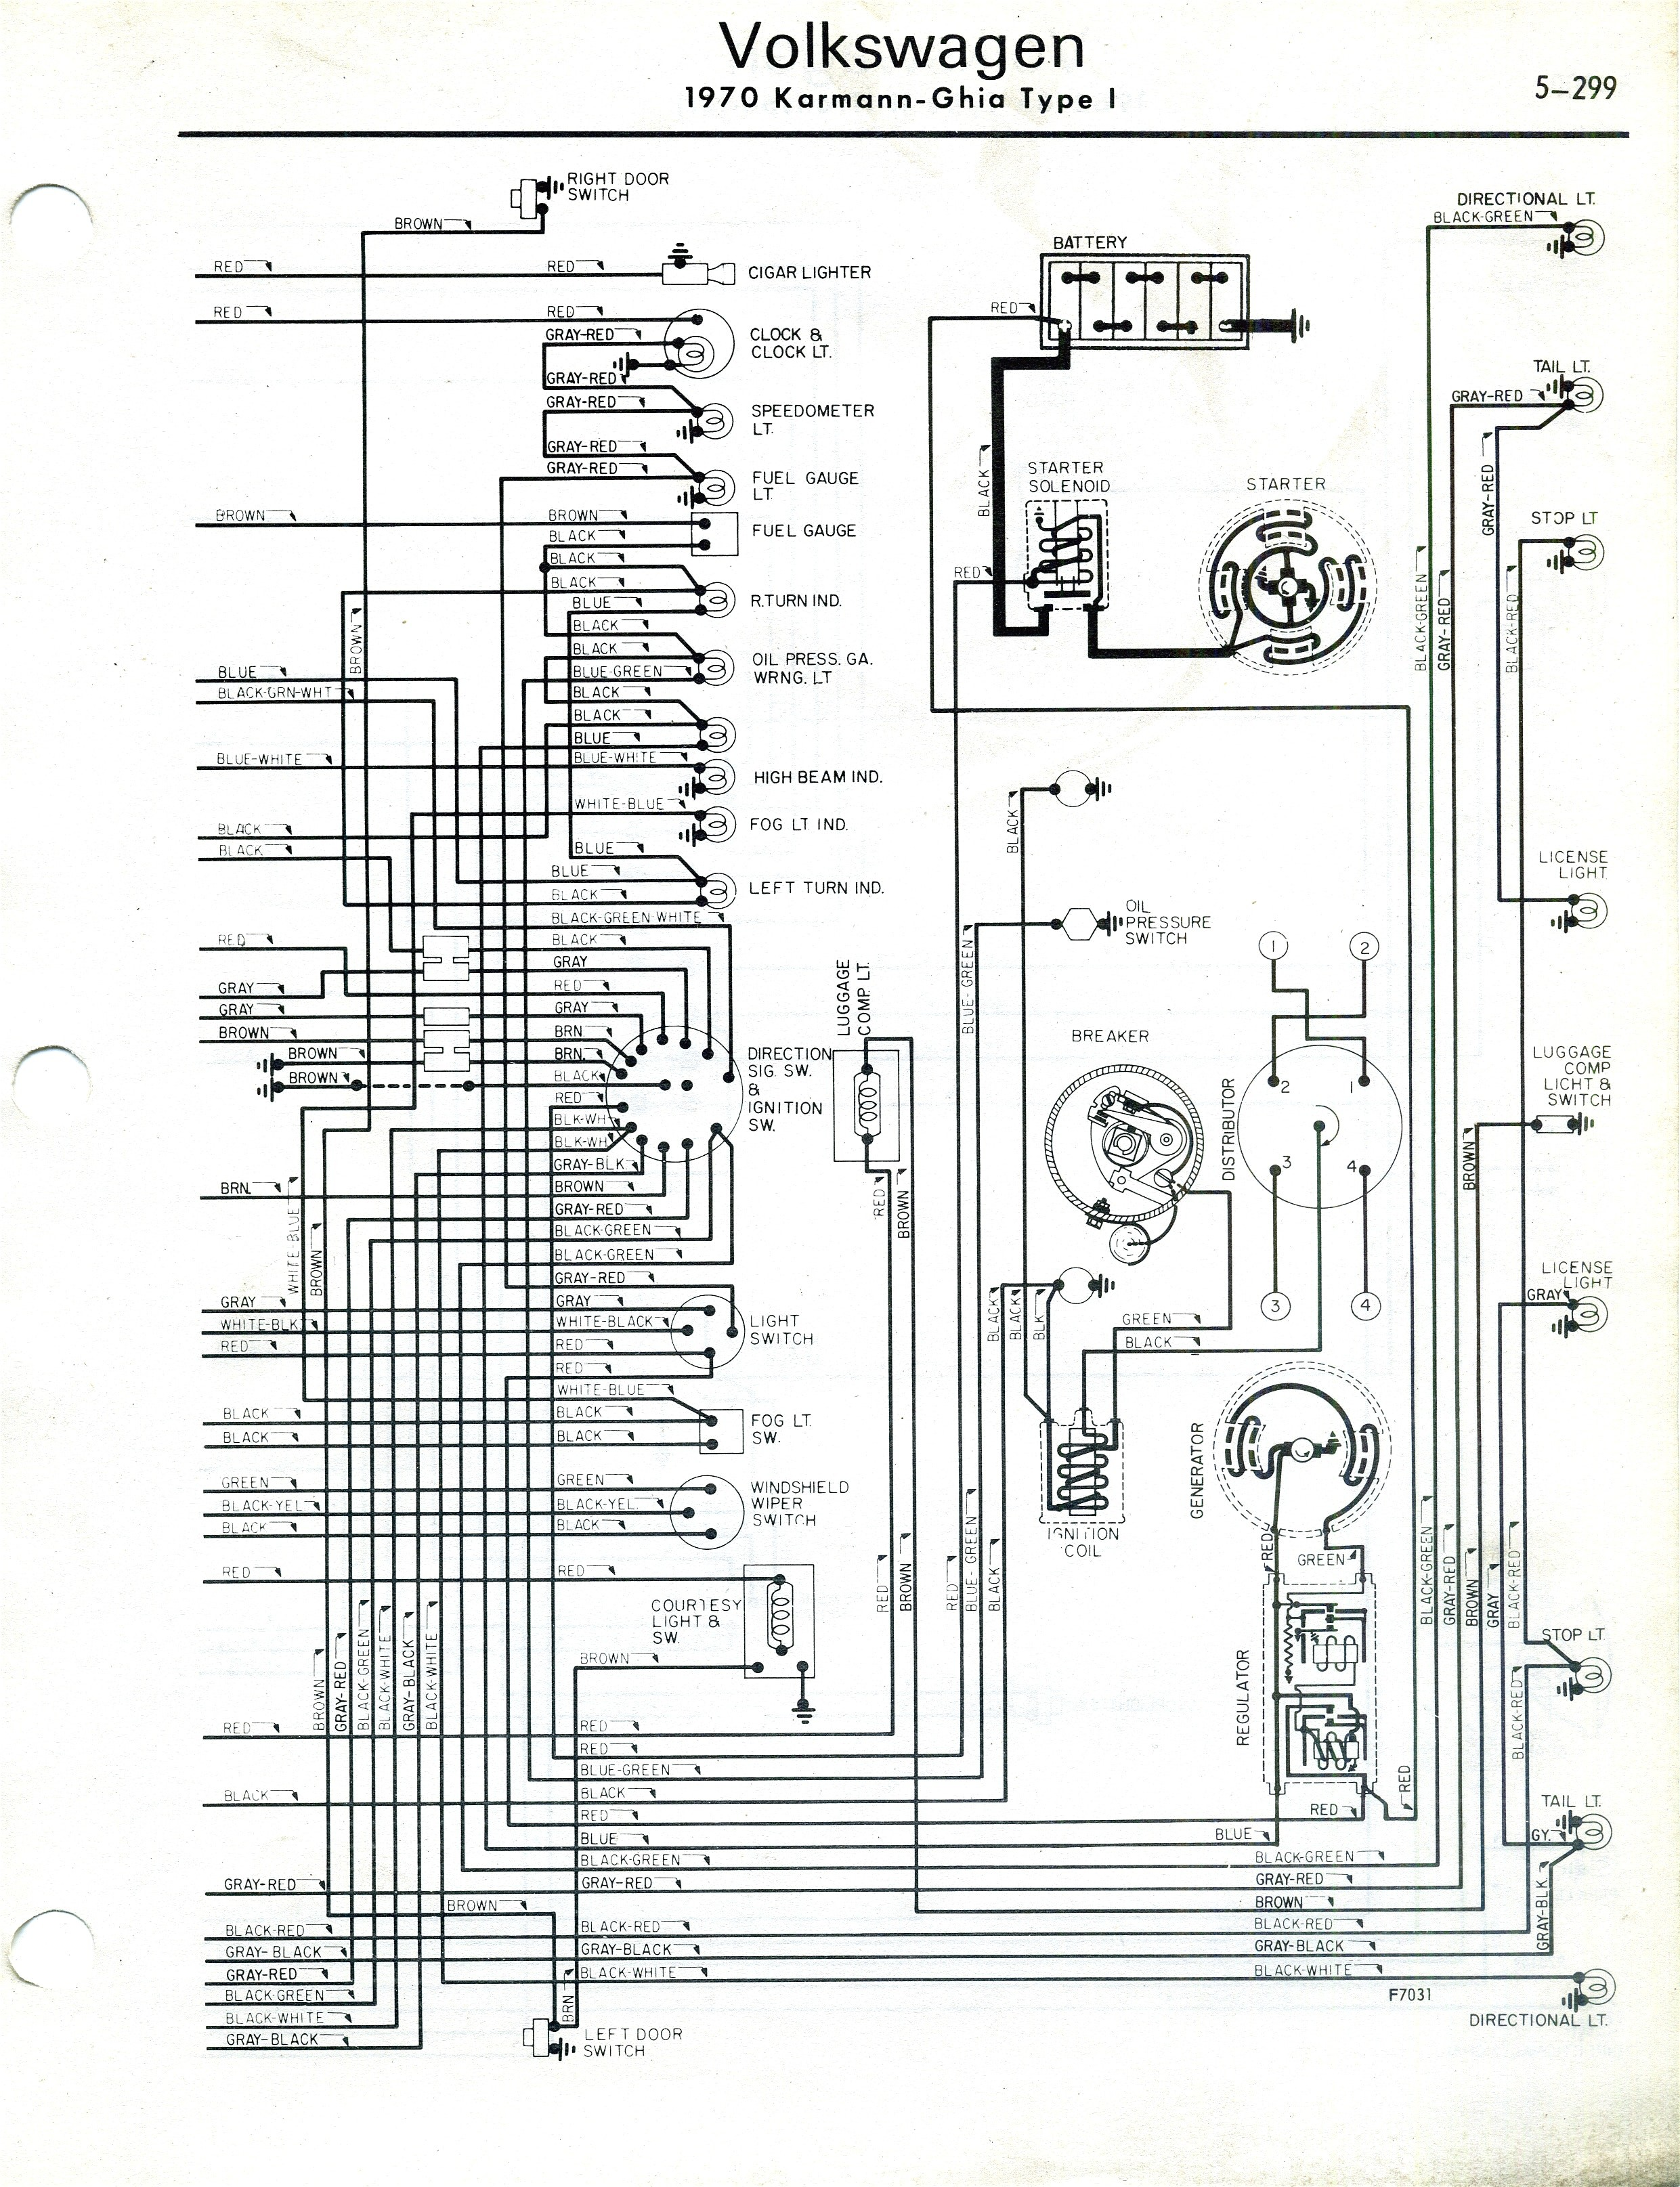 Mitchell Wiring Diagrams Free Wiring Diagram Automotive Free Download and Mitchell Best Of Mitchell Wiring Diagrams Free